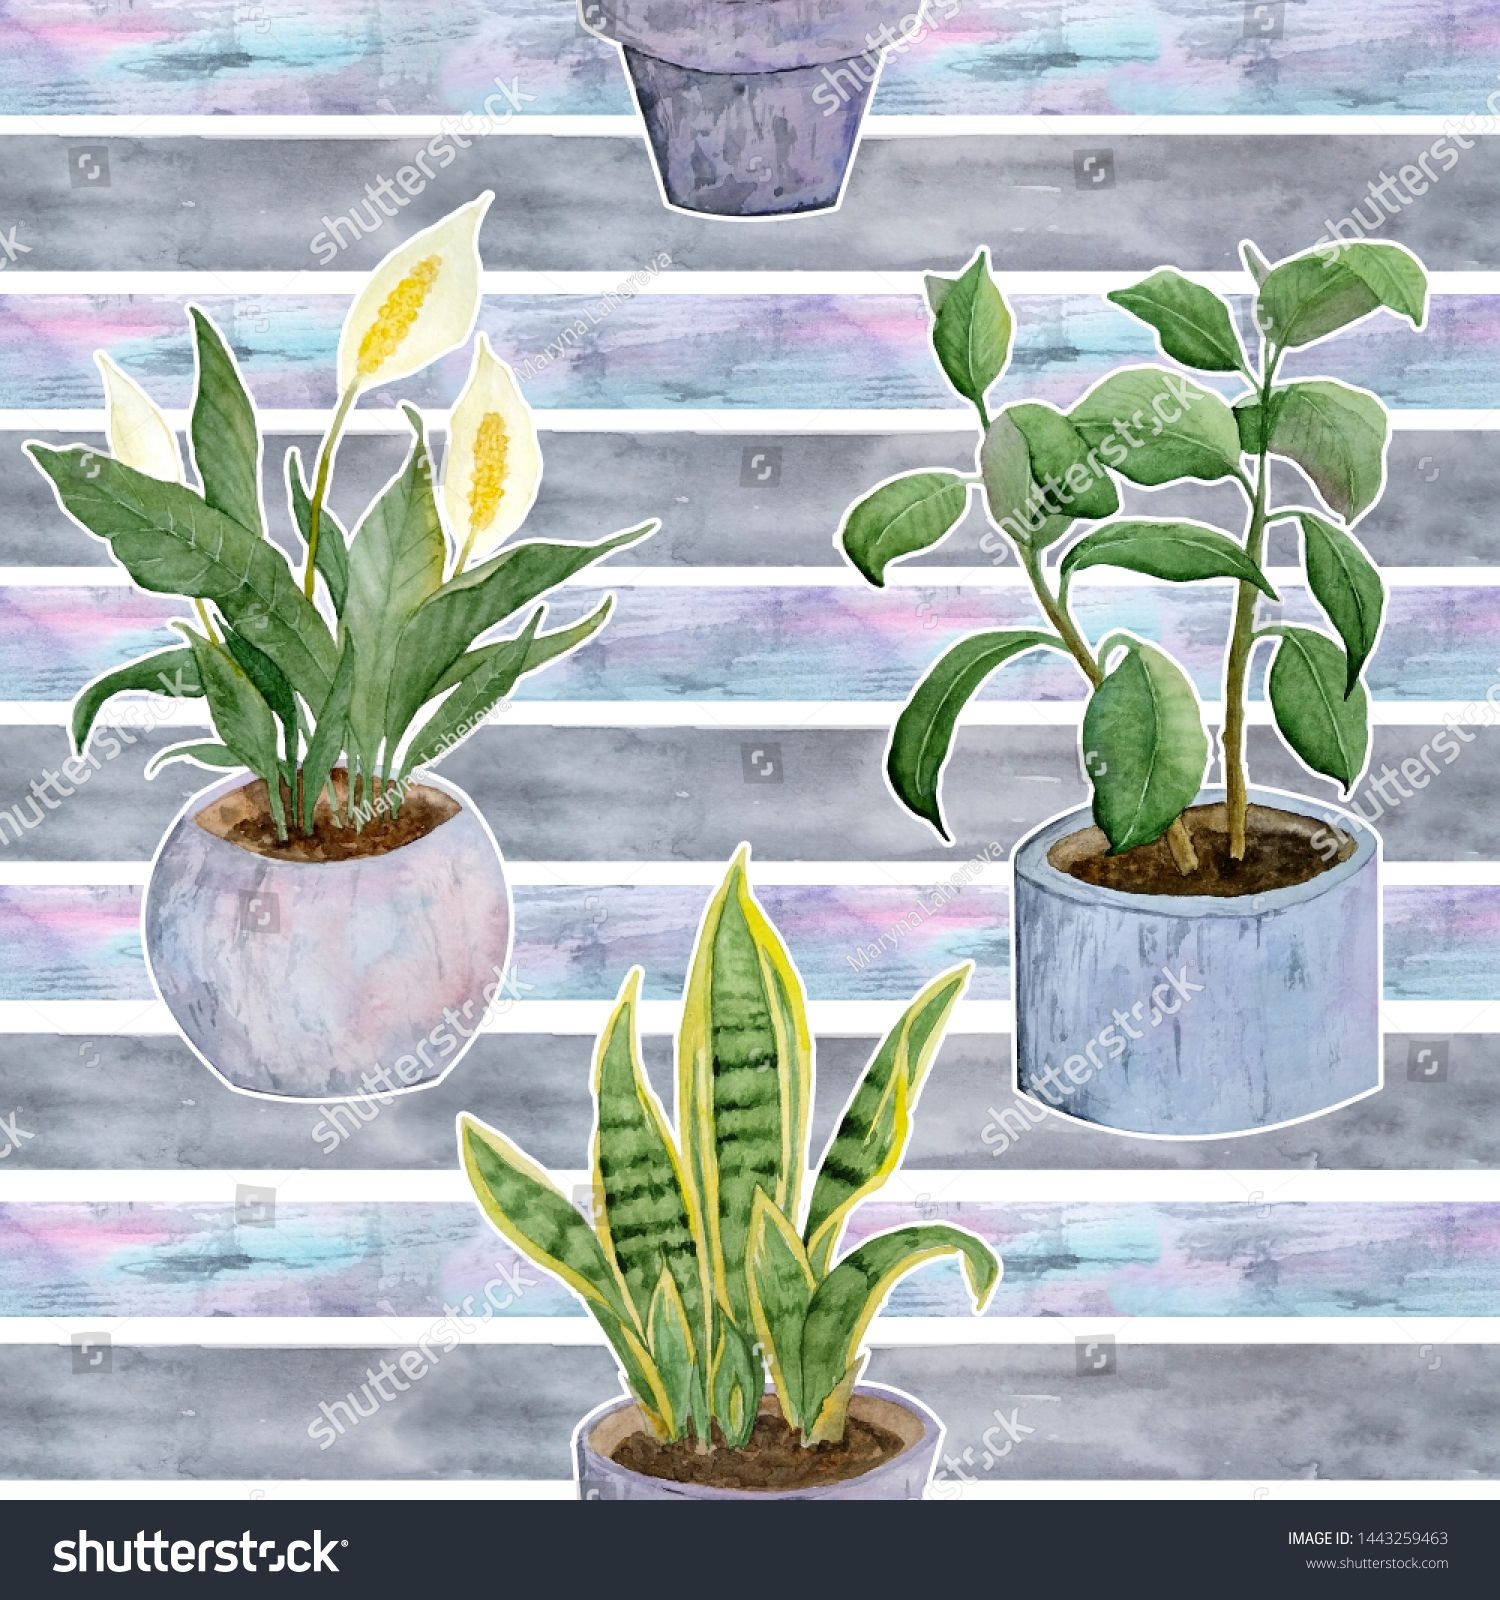 seamless watercolor hand drawn pattern with indoor potted